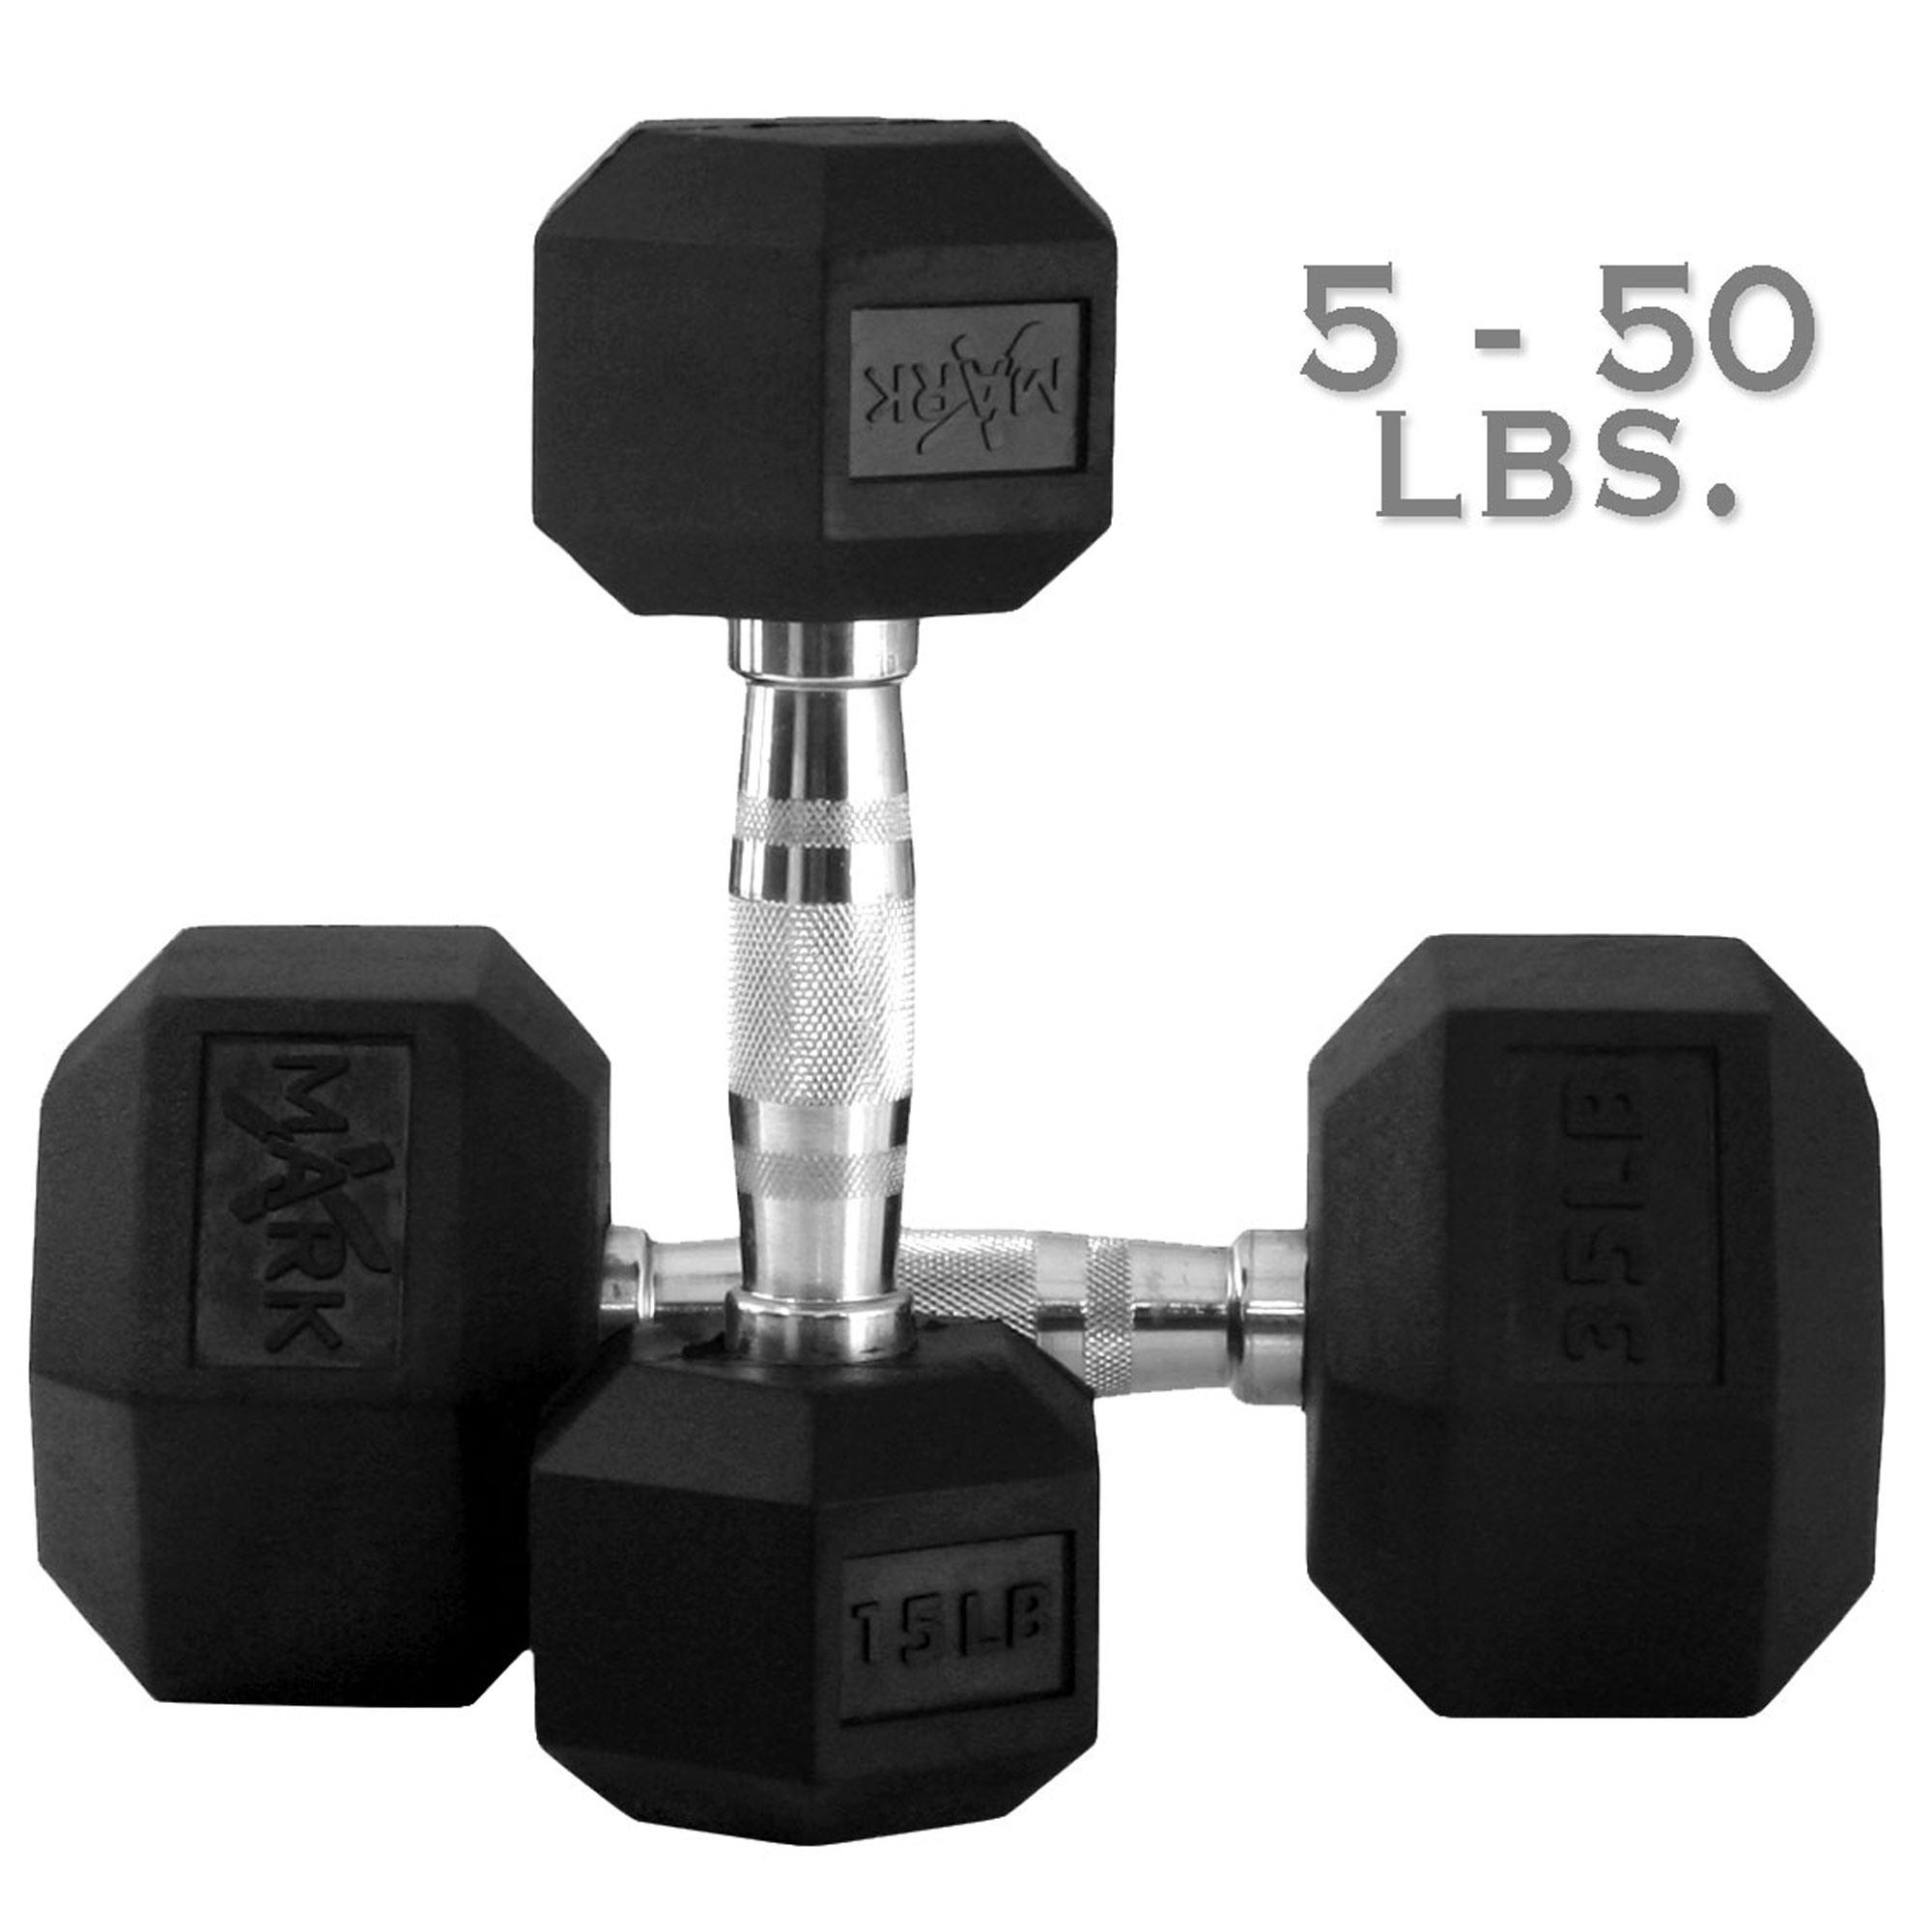 Dumbbell Set Up To 50: XMark 50 Lb. Adjustable Dumbbell-Pair